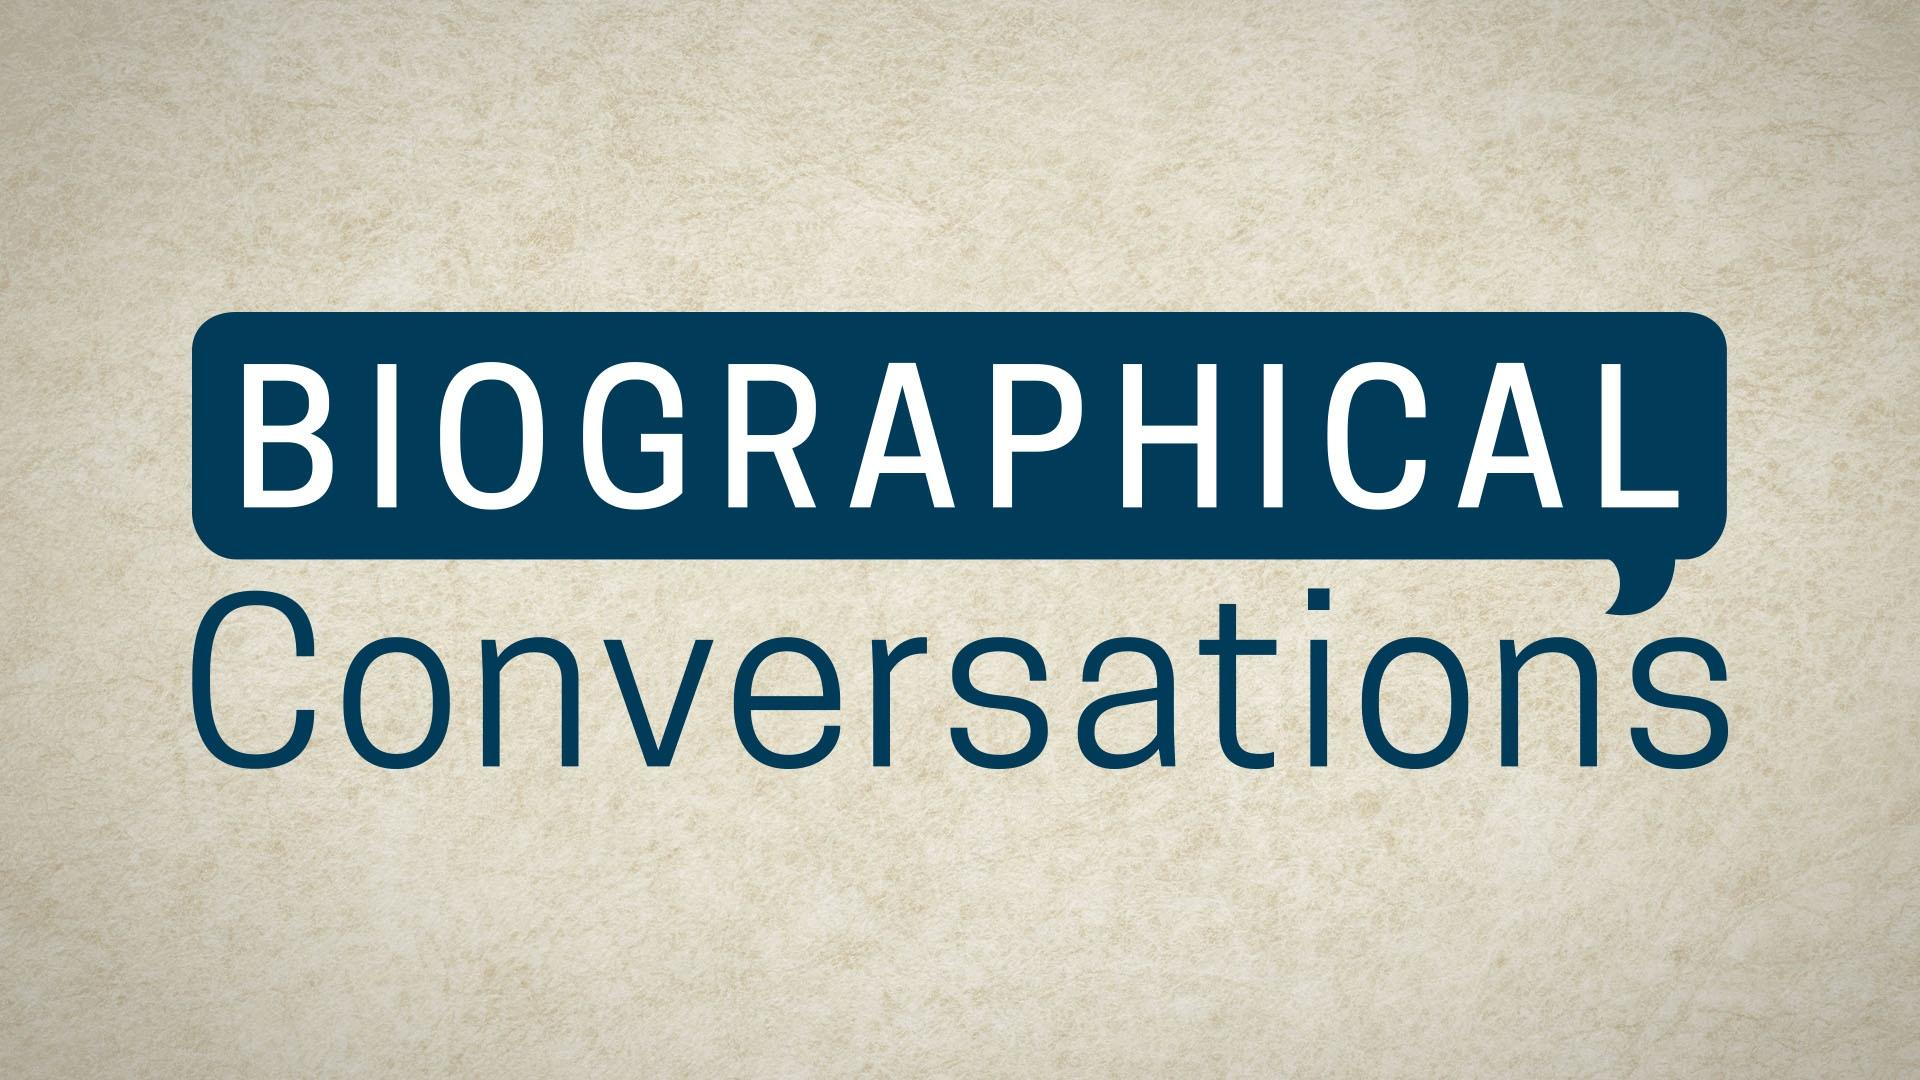 Biographical Conversations